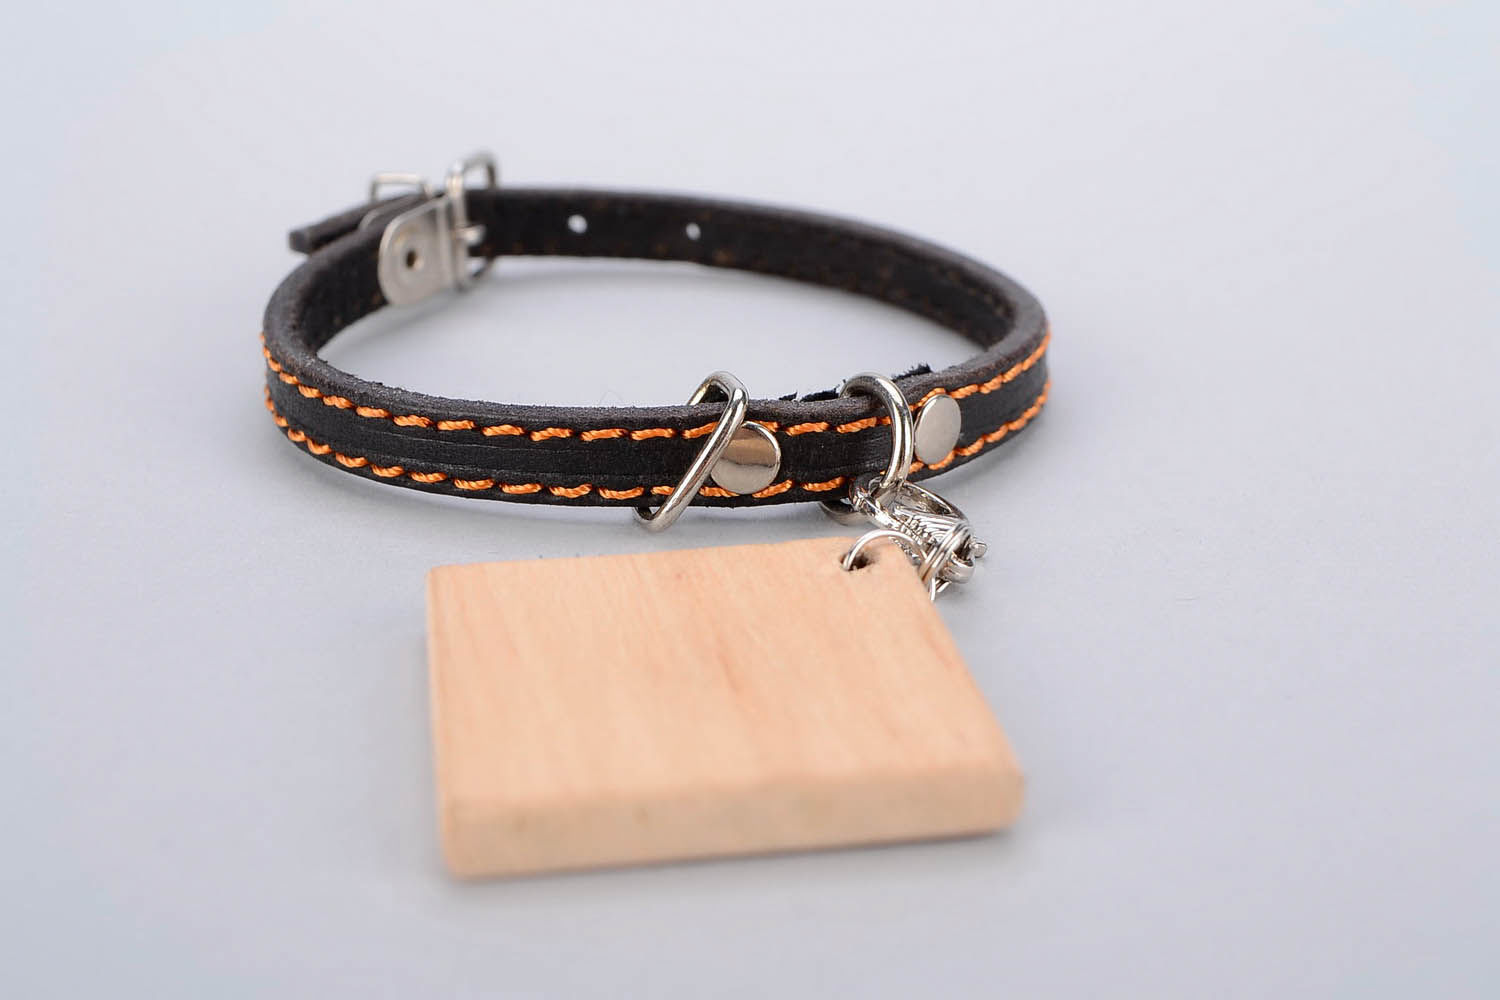 jewelry Leather collar with a token - MADEheart.com